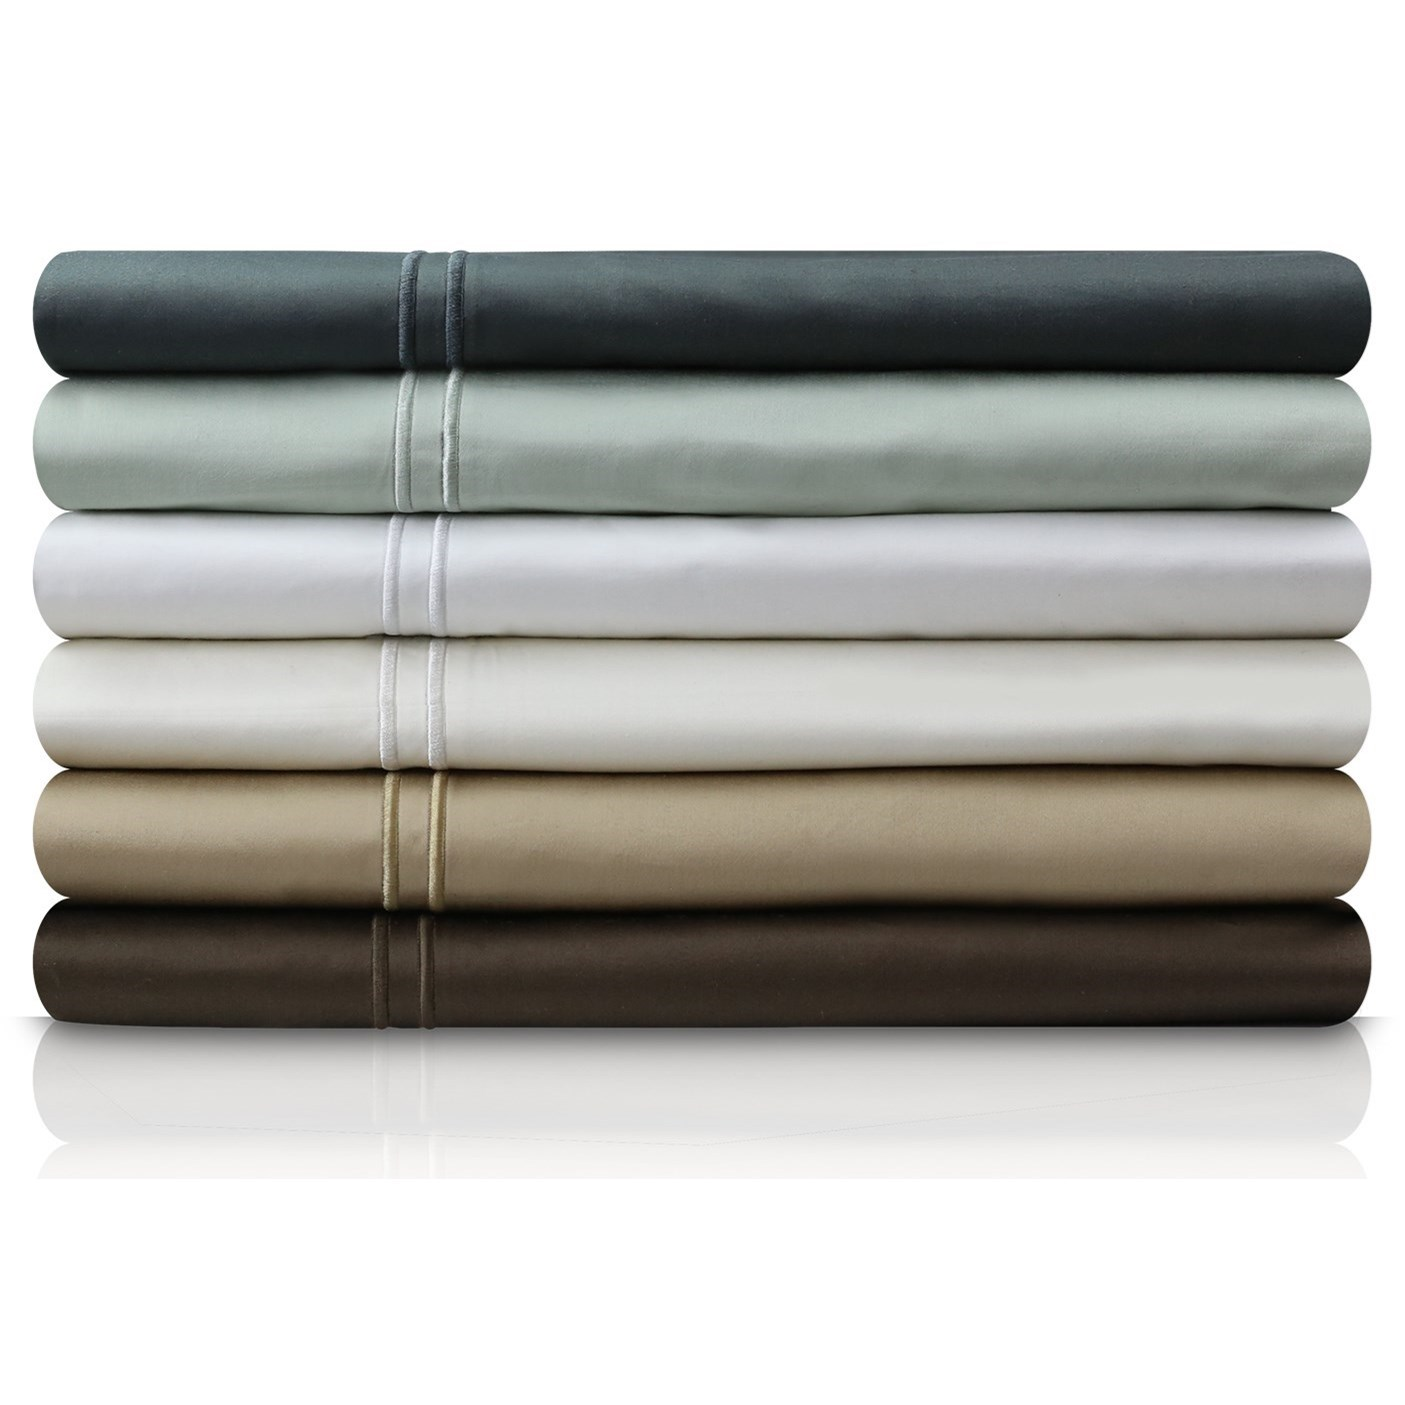 Malouf Egyptian Cotton Queen 400 TC Egyptian Cotton Sheet Set - Item Number: MA04QQSISS